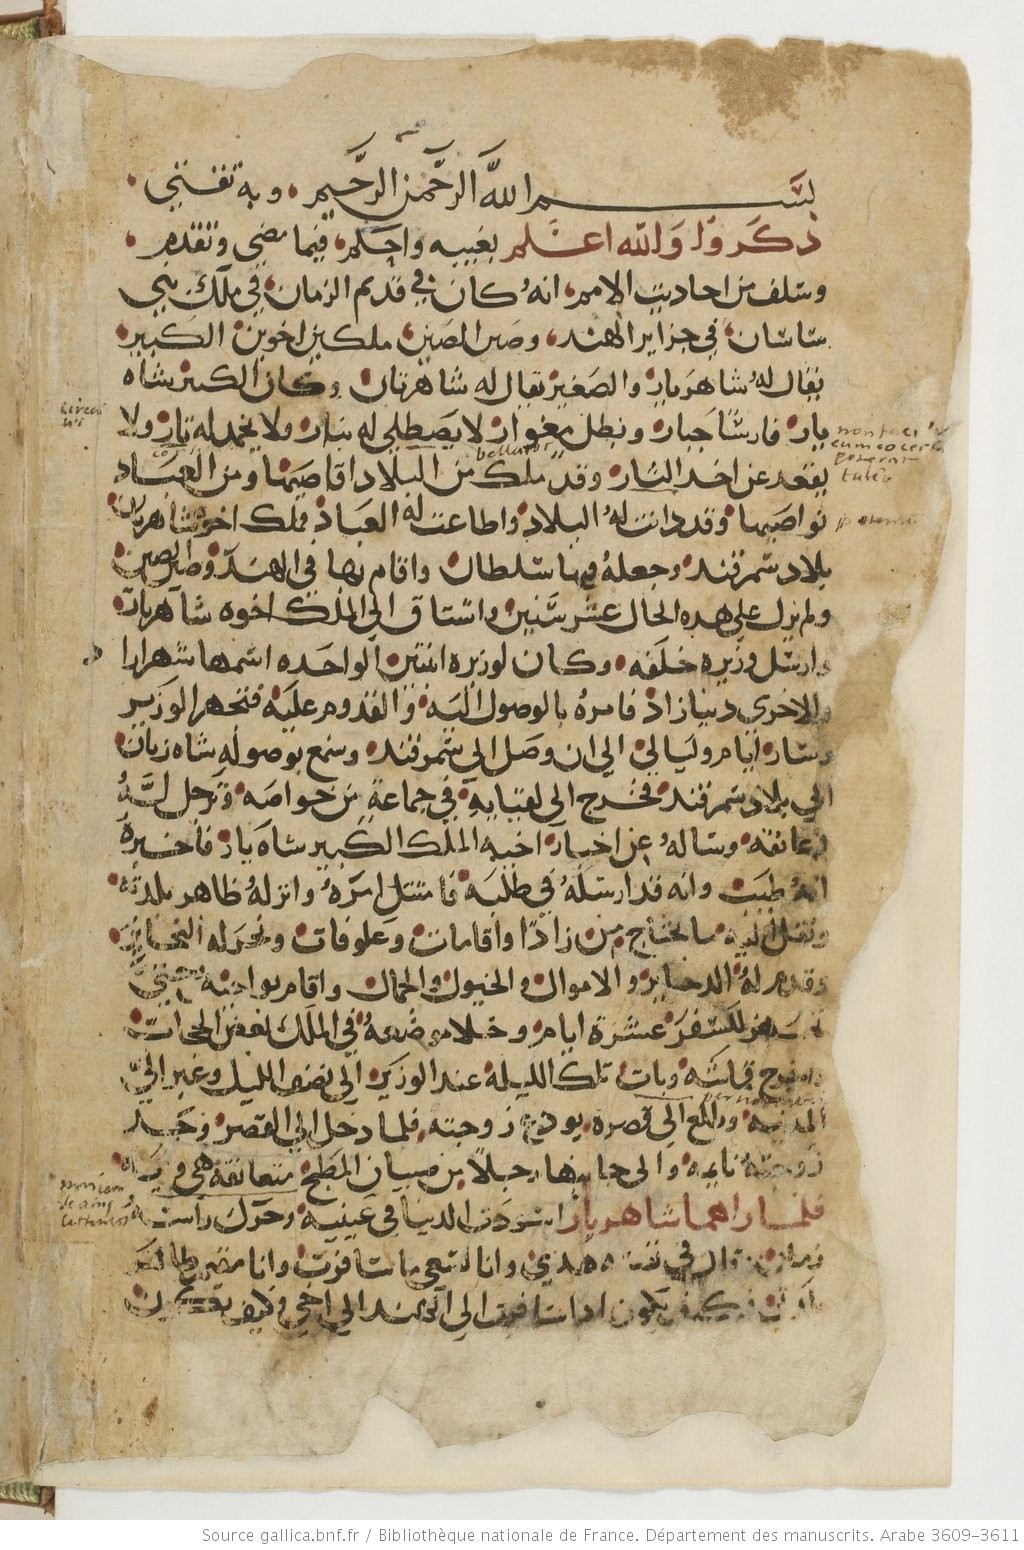 View 12 - Folio 1v of 14th century manuscript